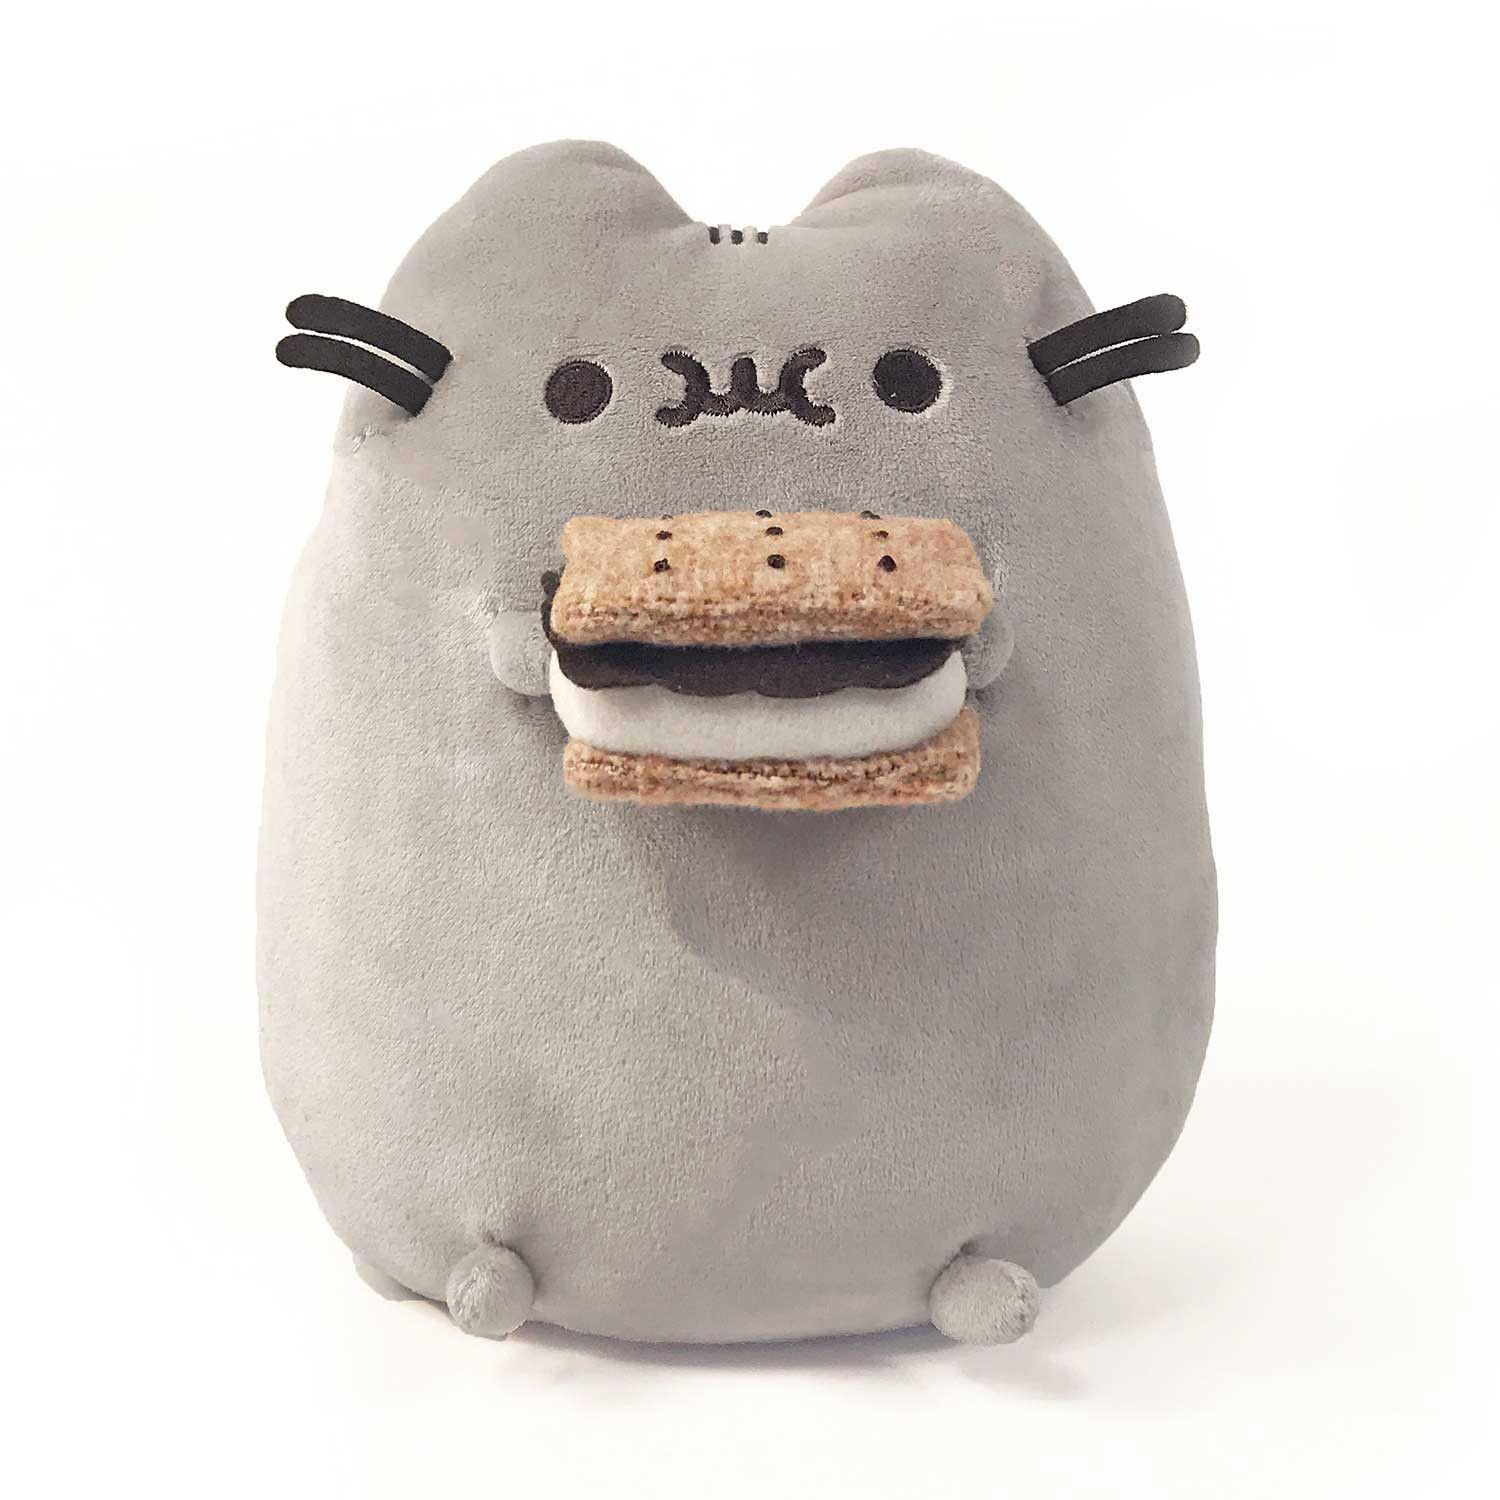 Smores Stuffed Animal, Exclusive It Sugar Pusheen S Mores Plush 25 99usd At Itssugar Com Pusheencatsdiy Pusheen Plush Pusheen Cat Pusheen Plushie